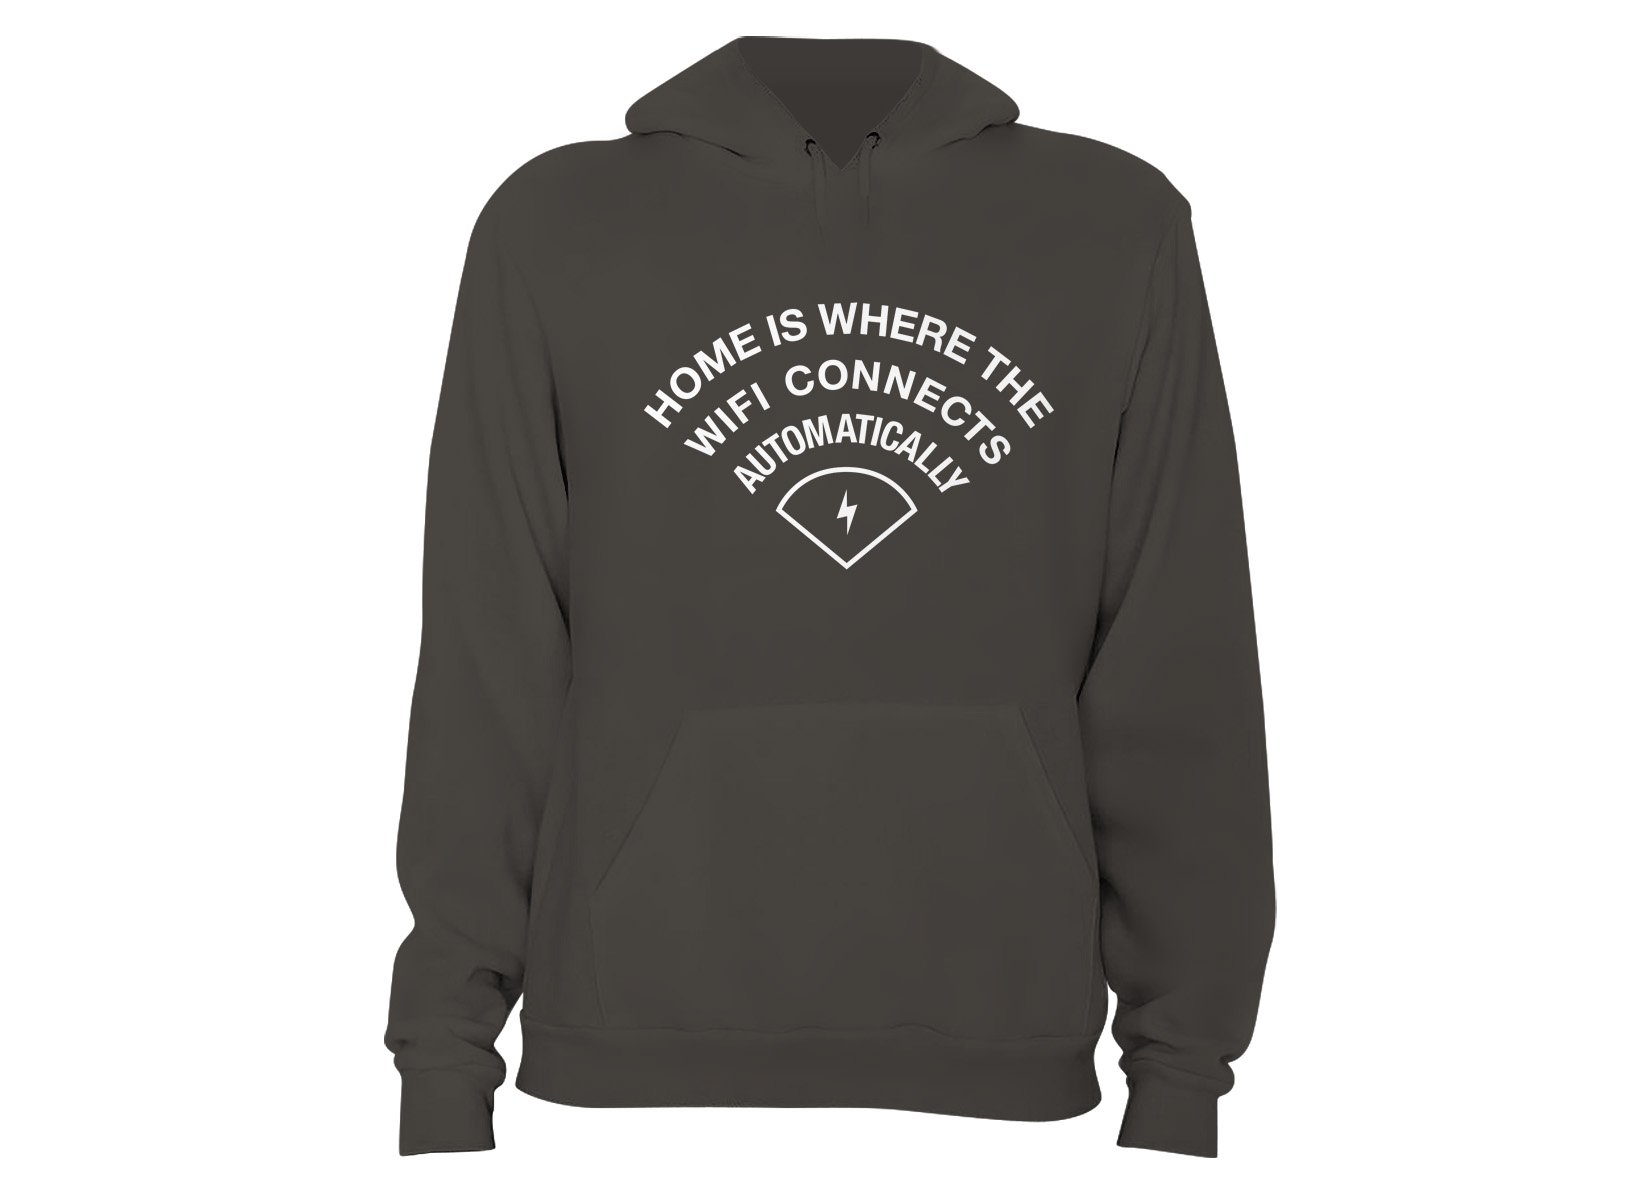 Home Is Where The WiFI Connects Automatically on Hoodie